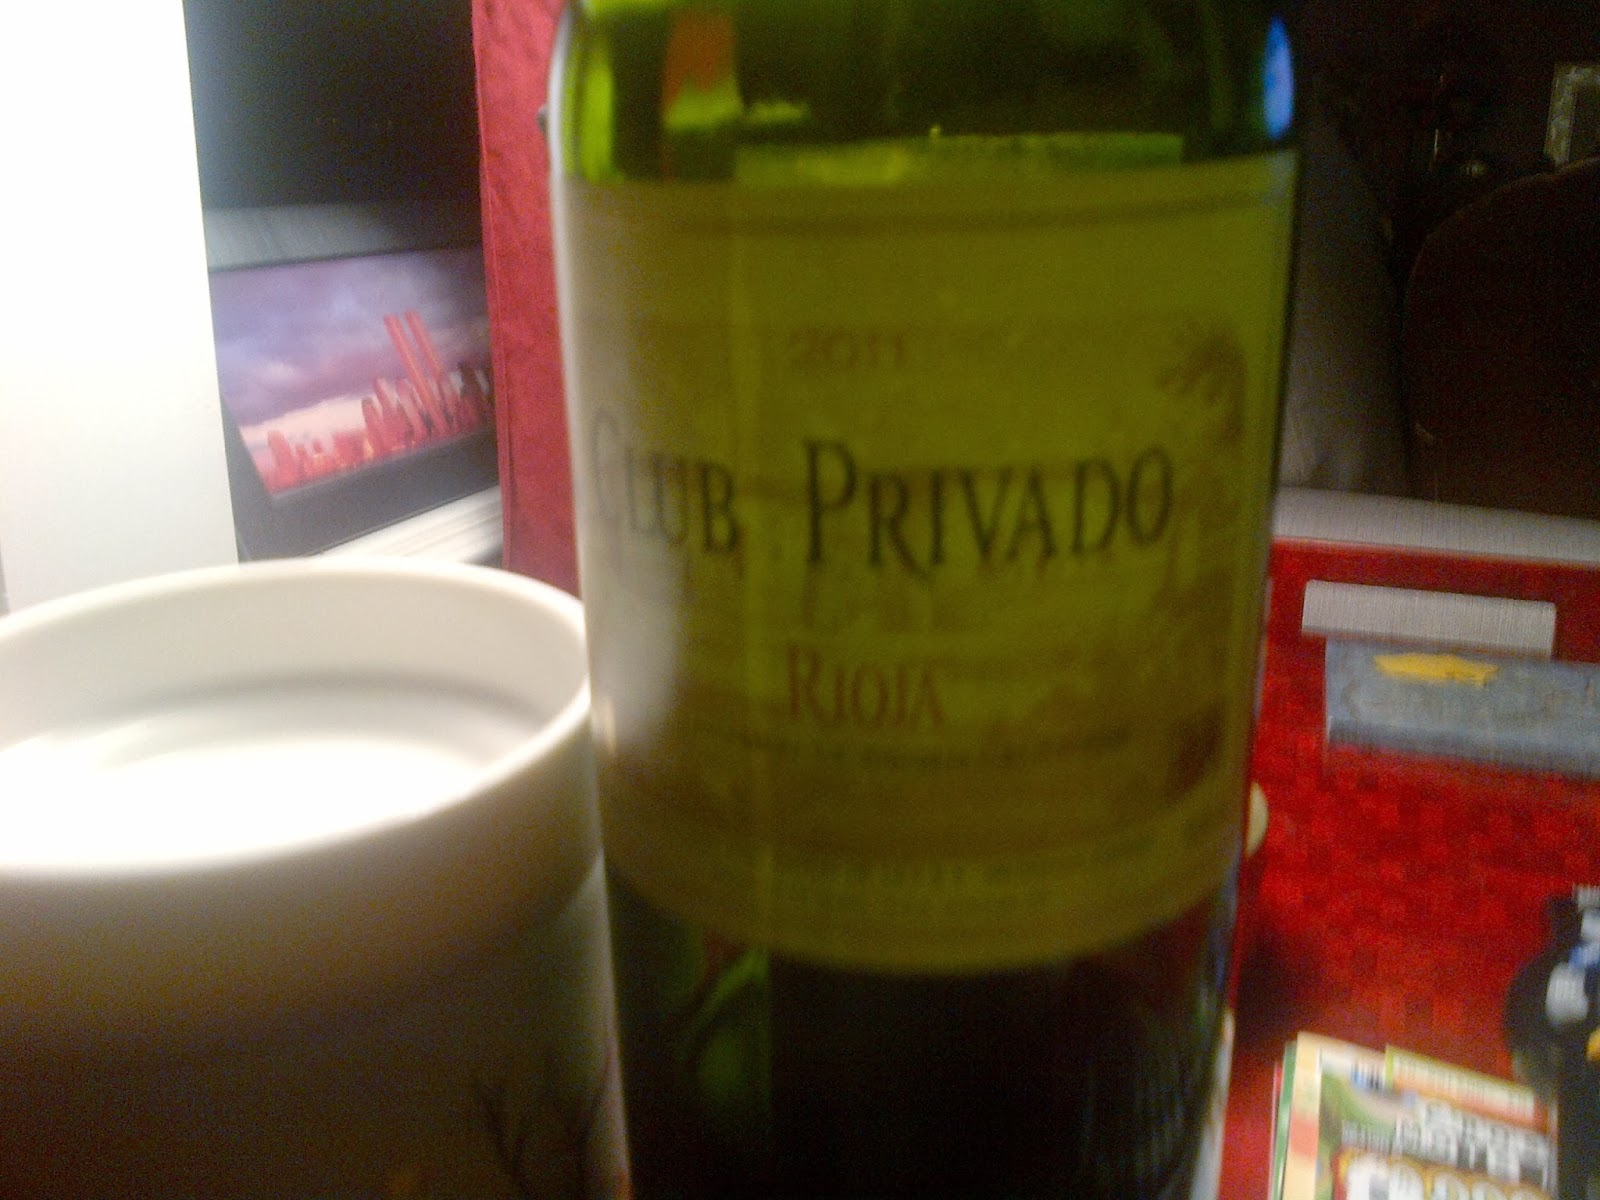 Club Privado Rioja